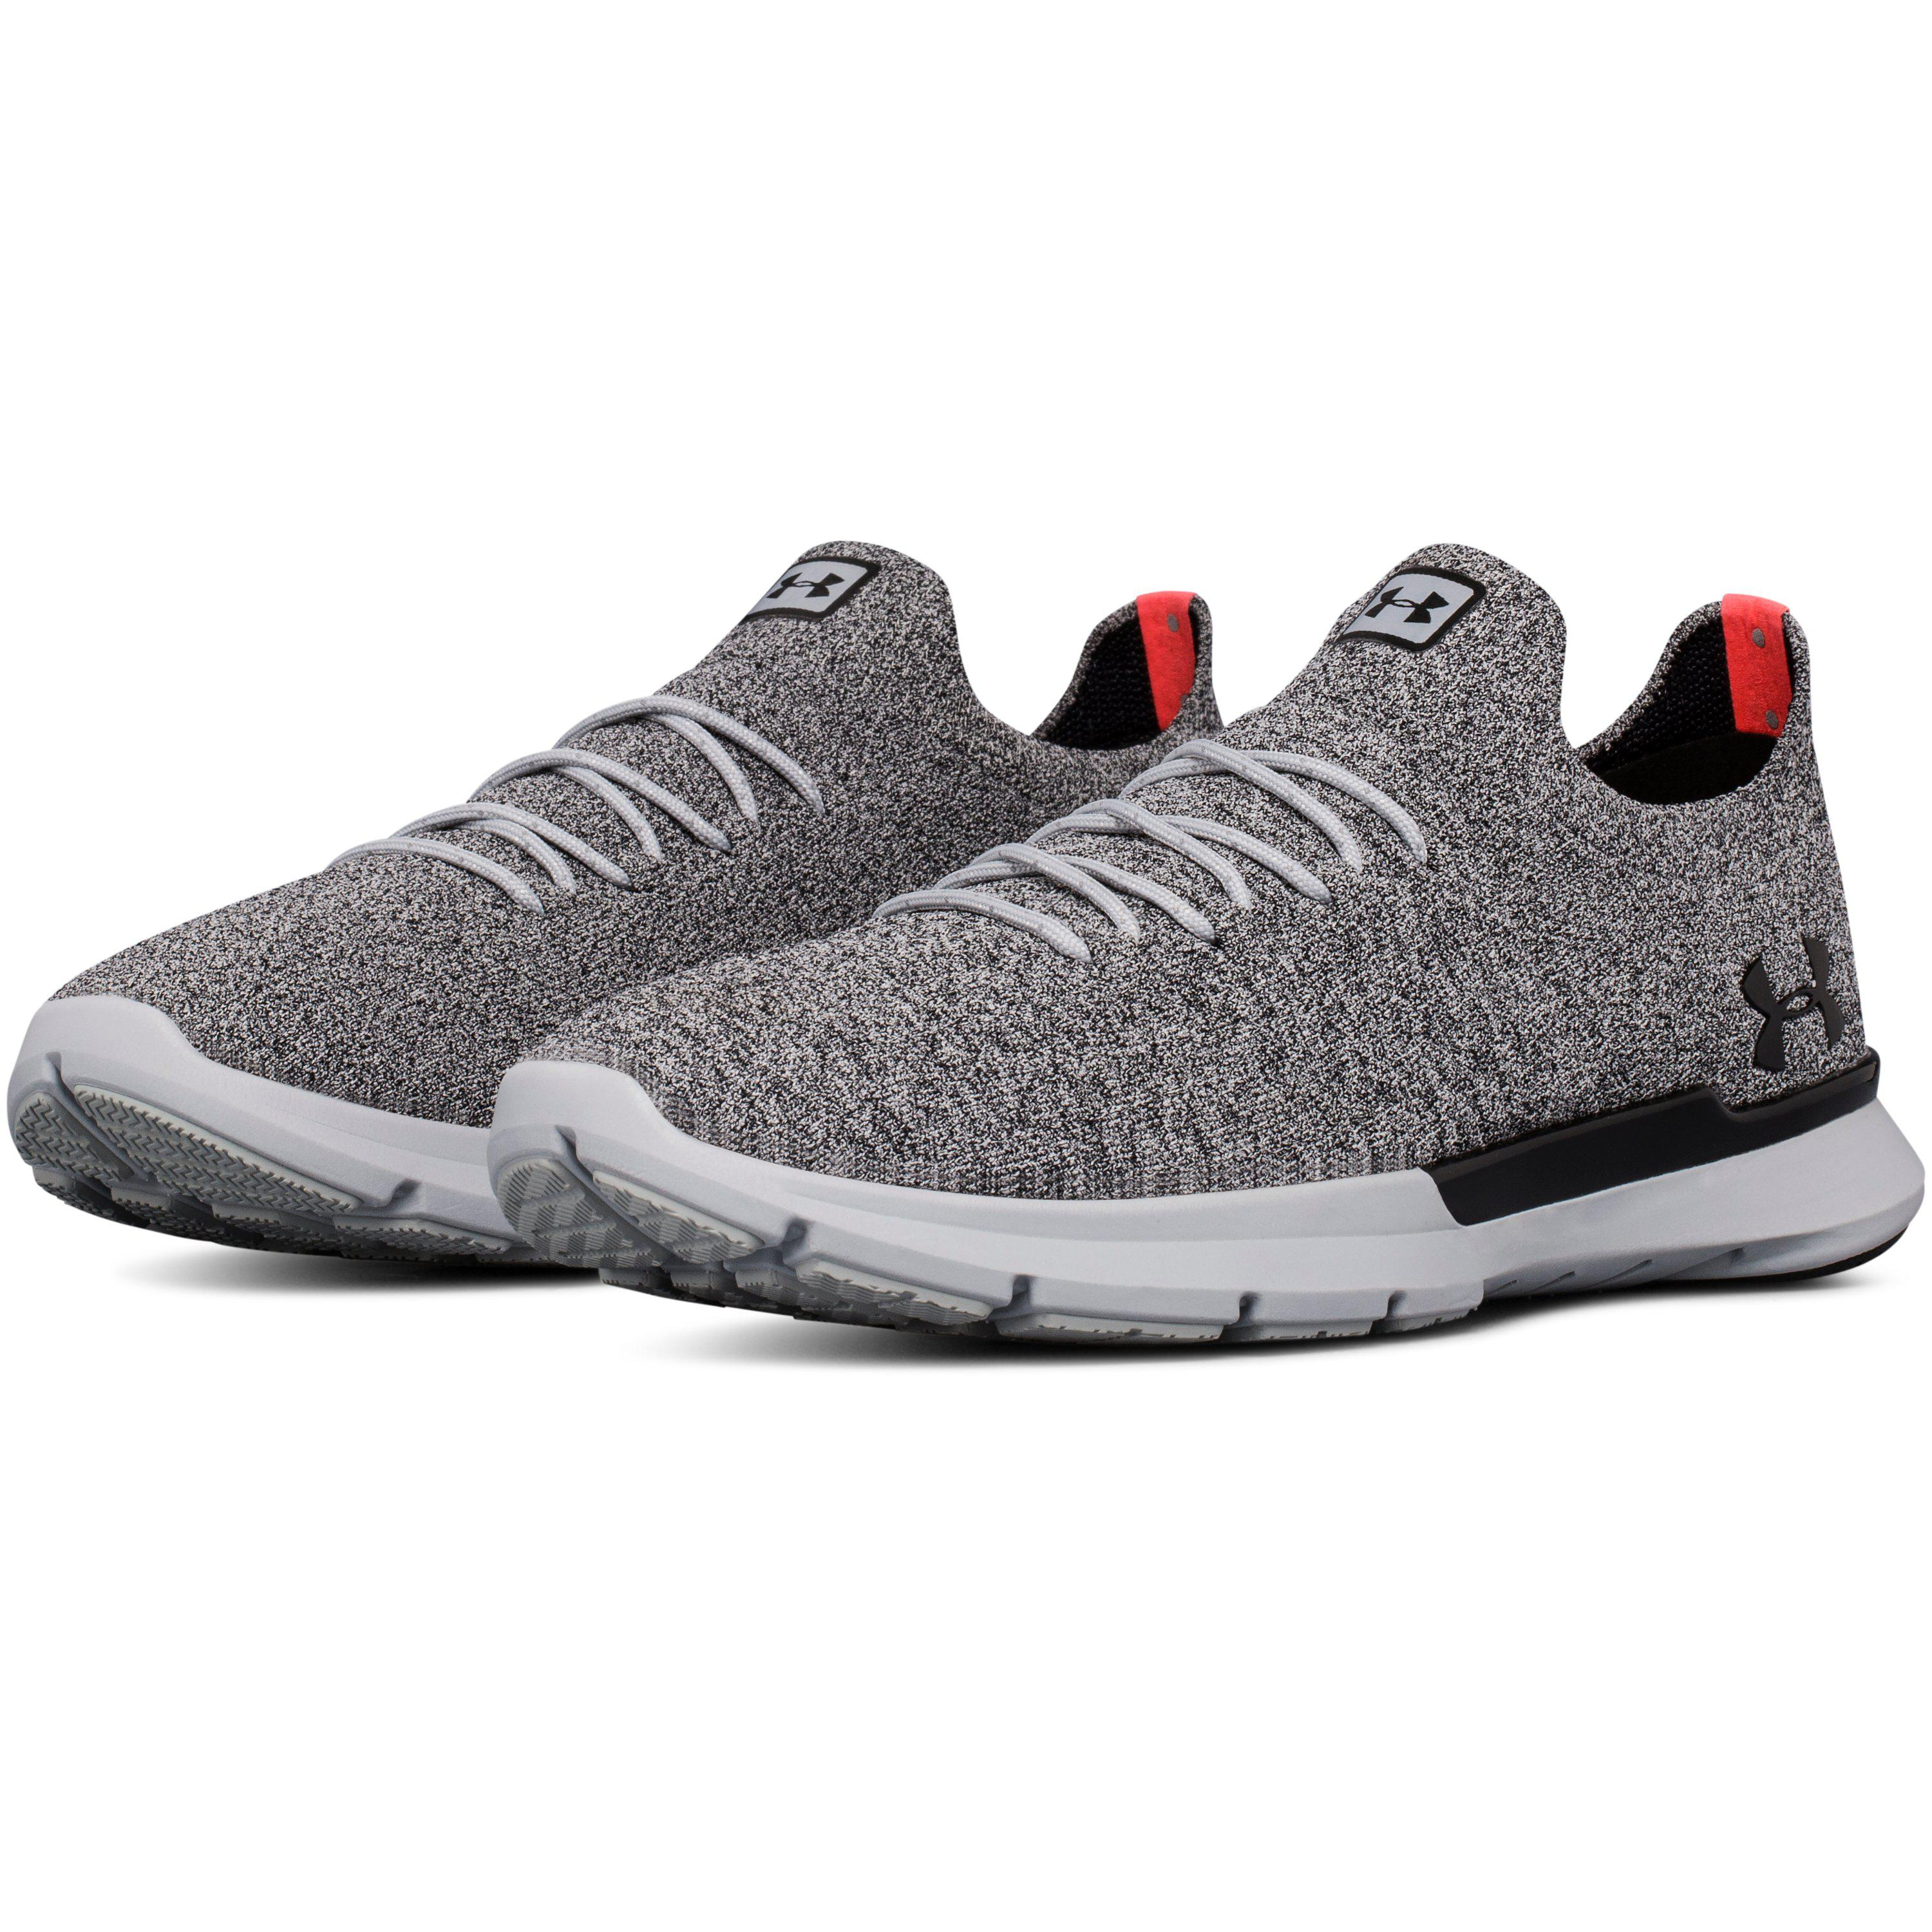 Ua Slingwrap Phase Shoes in Gray